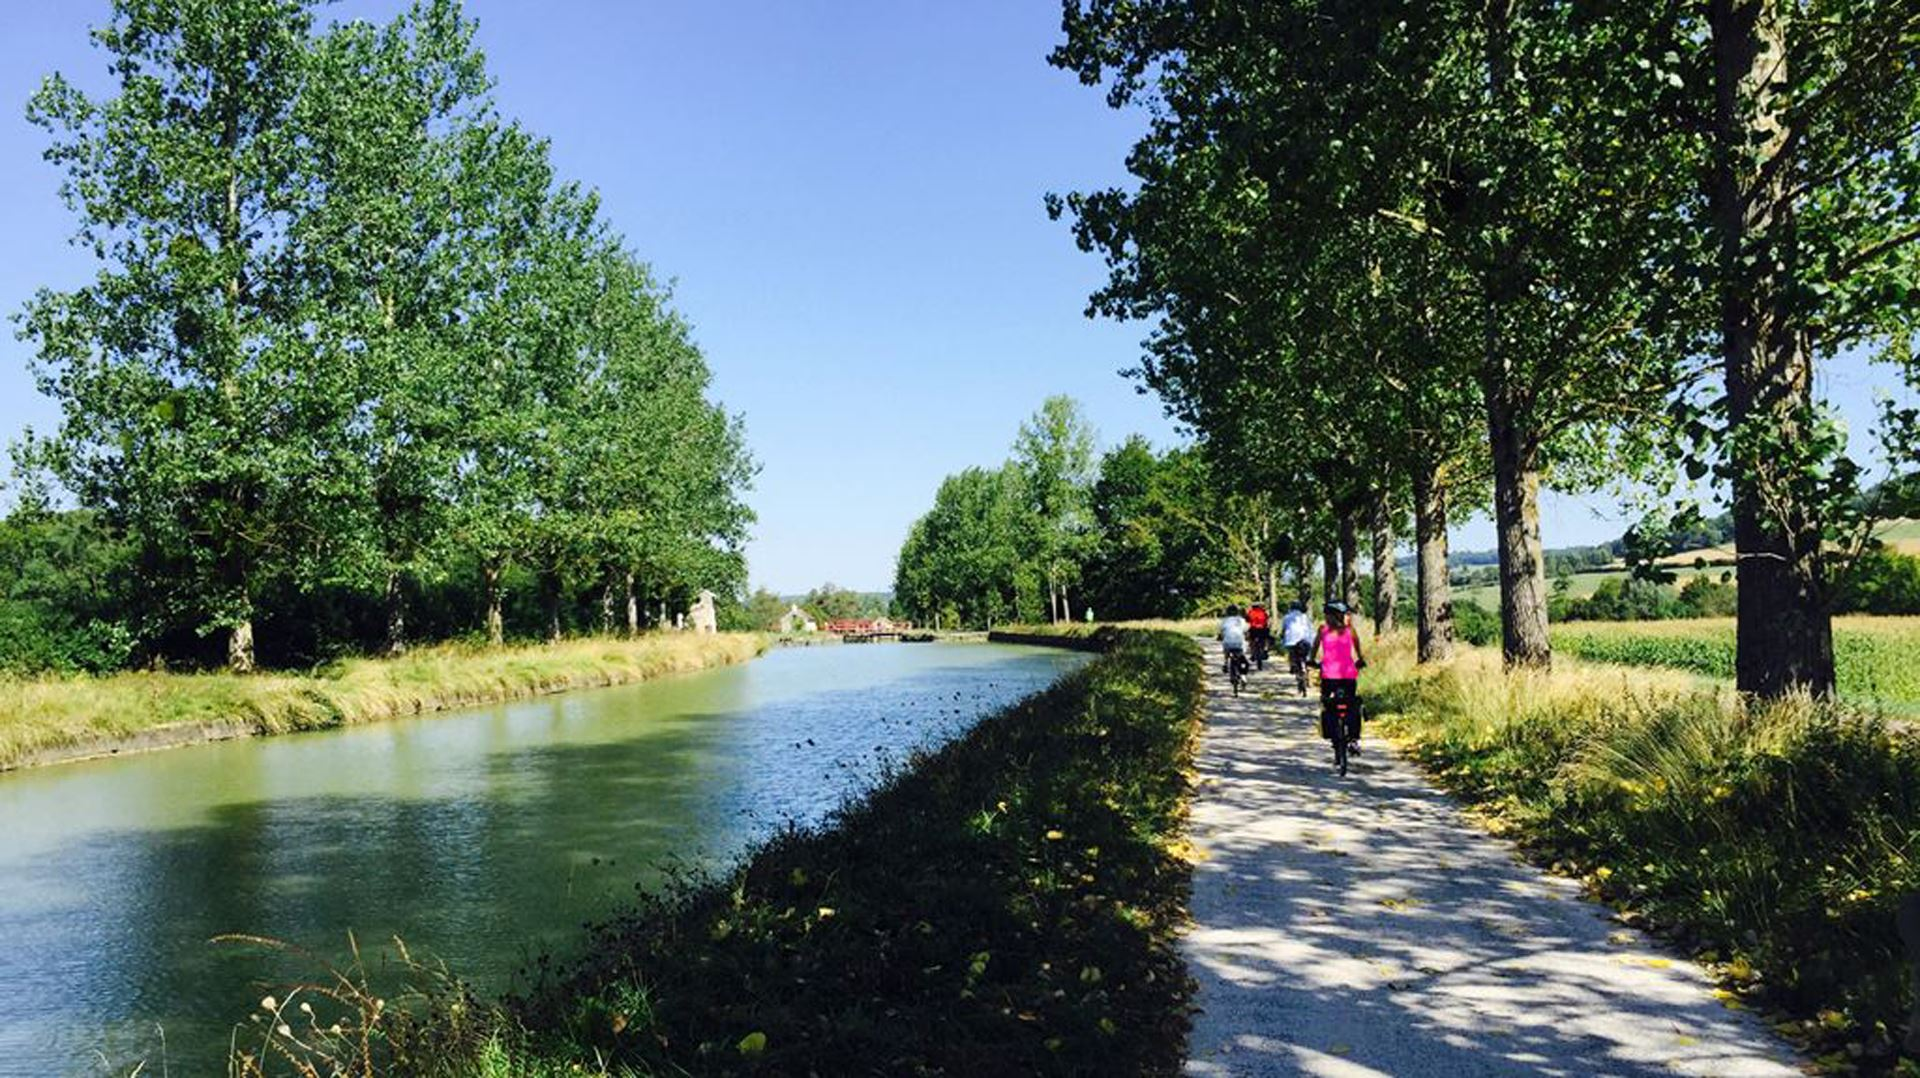 BY BIKE ALONG THE CANALS IN BURGUNDY